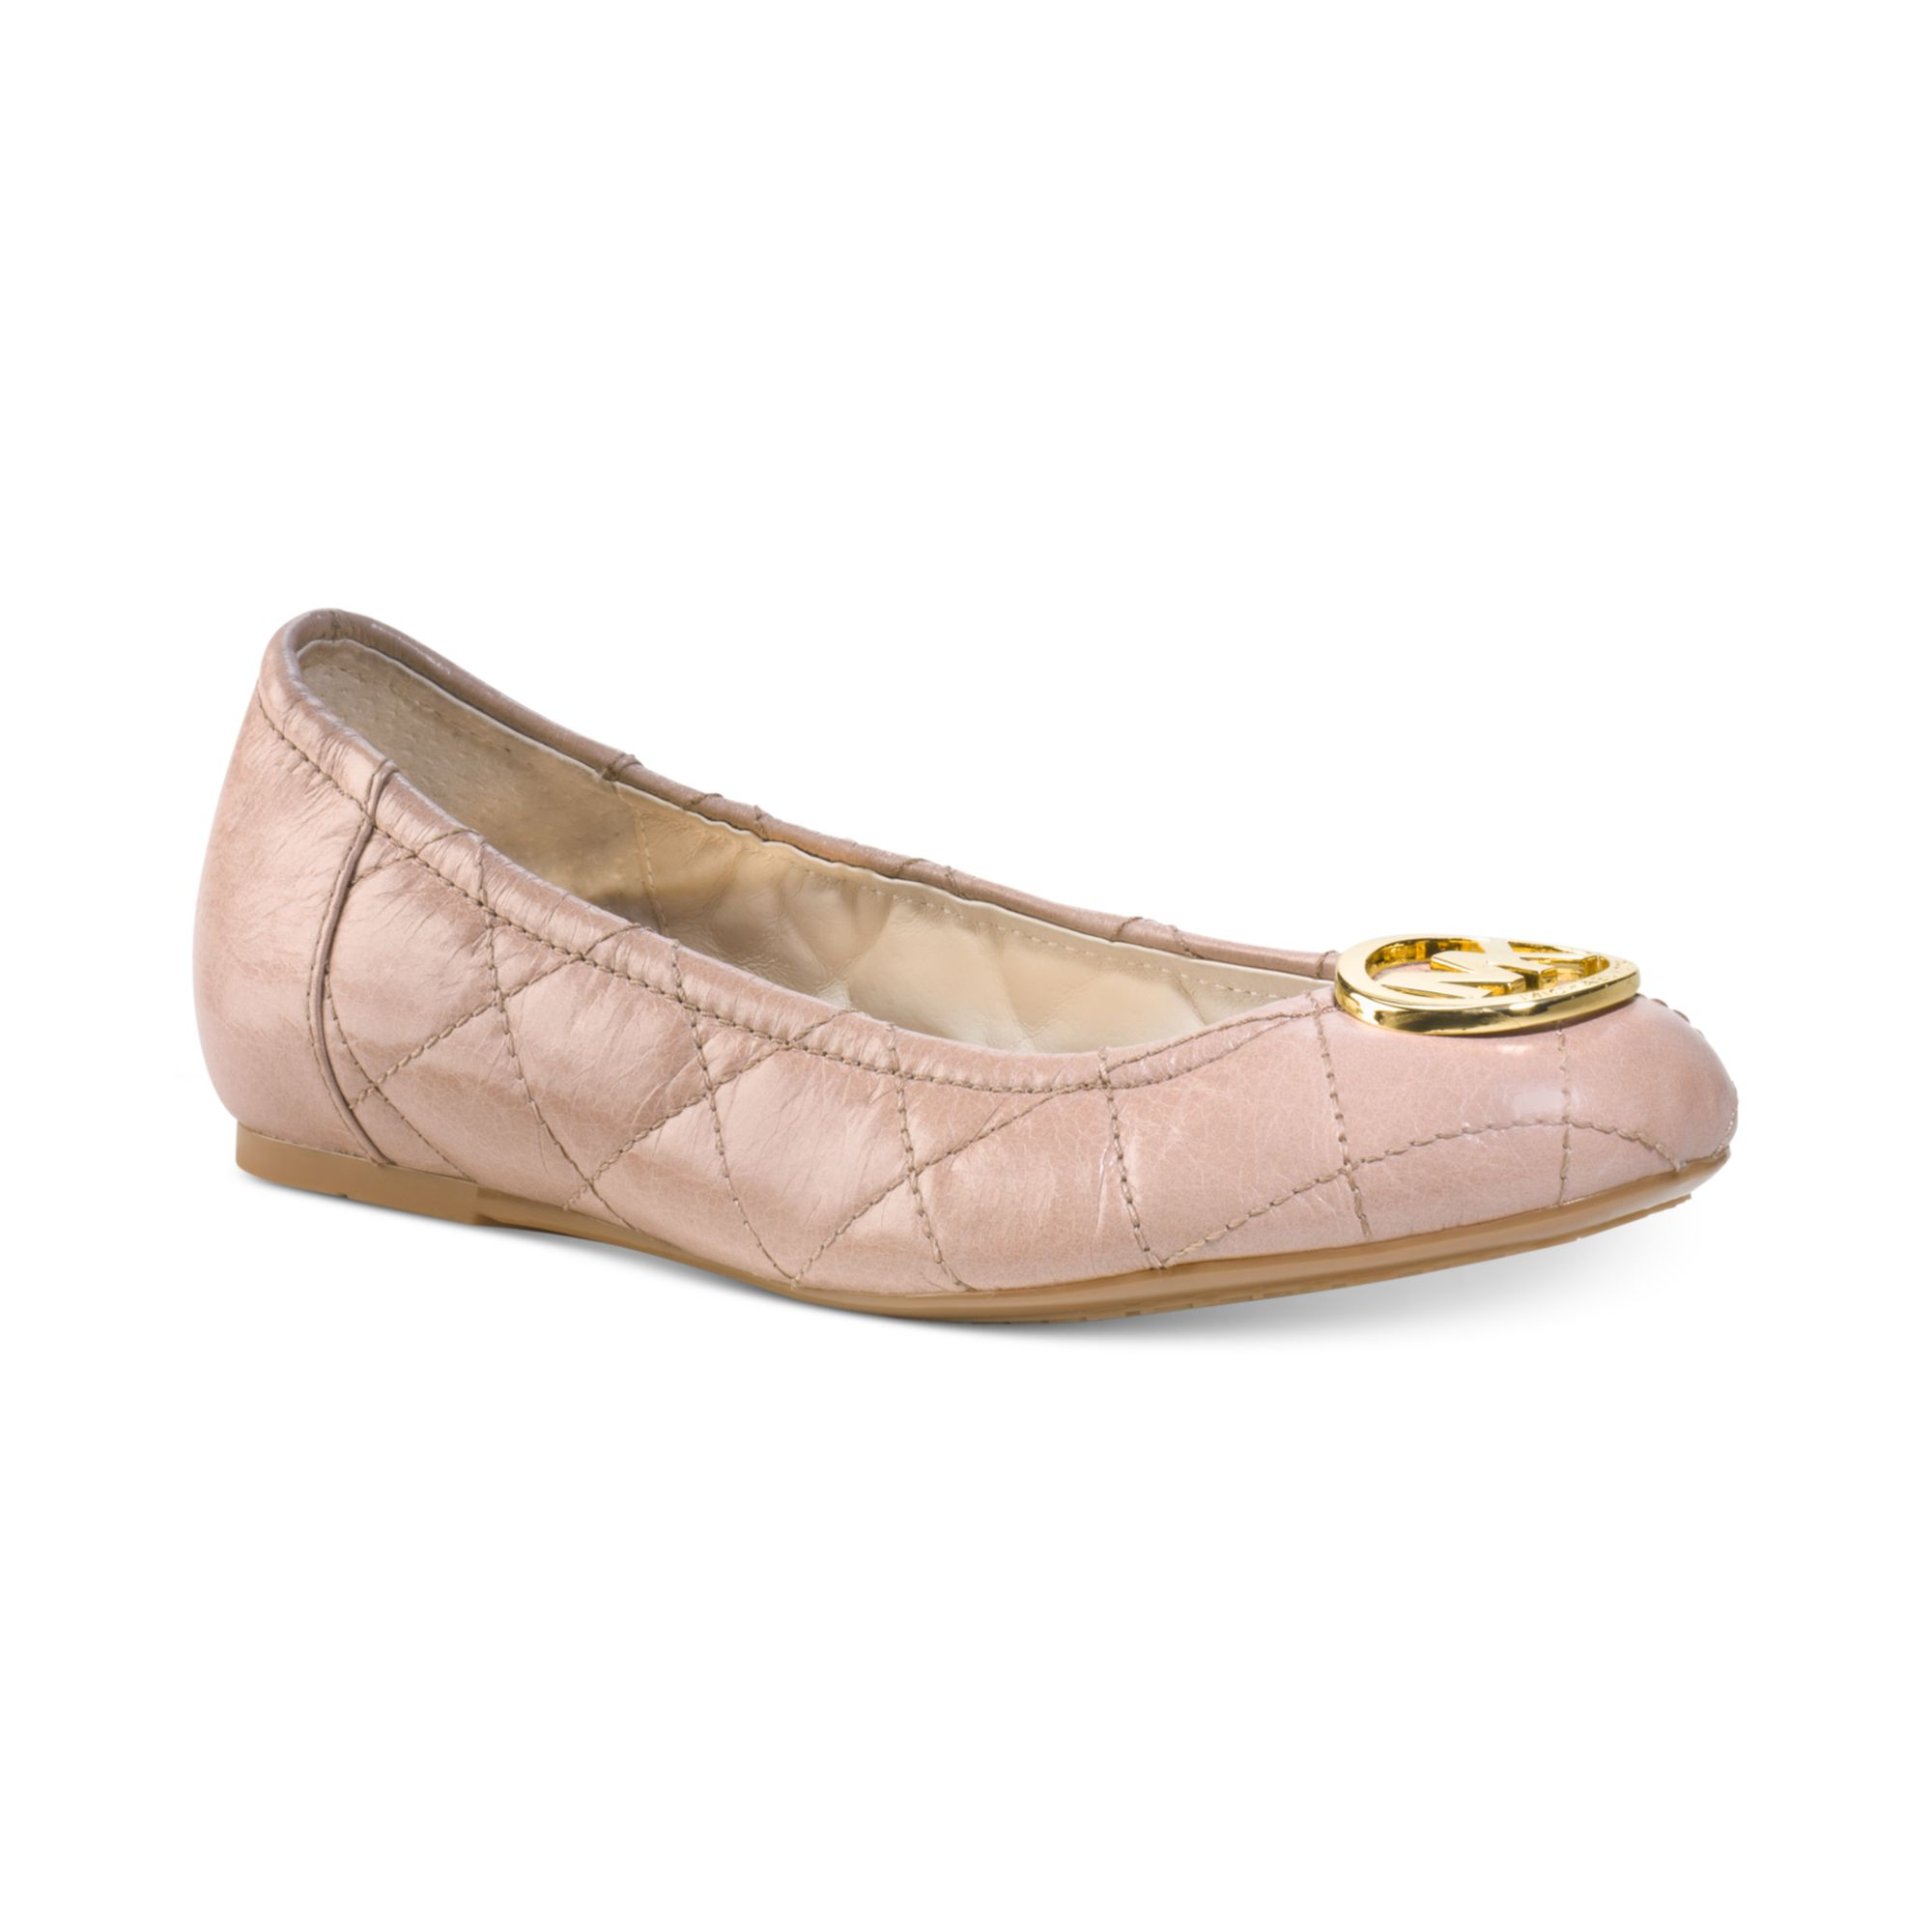 michael kors michael fulton quilted ballet flats in pink dark nude lyst. Black Bedroom Furniture Sets. Home Design Ideas